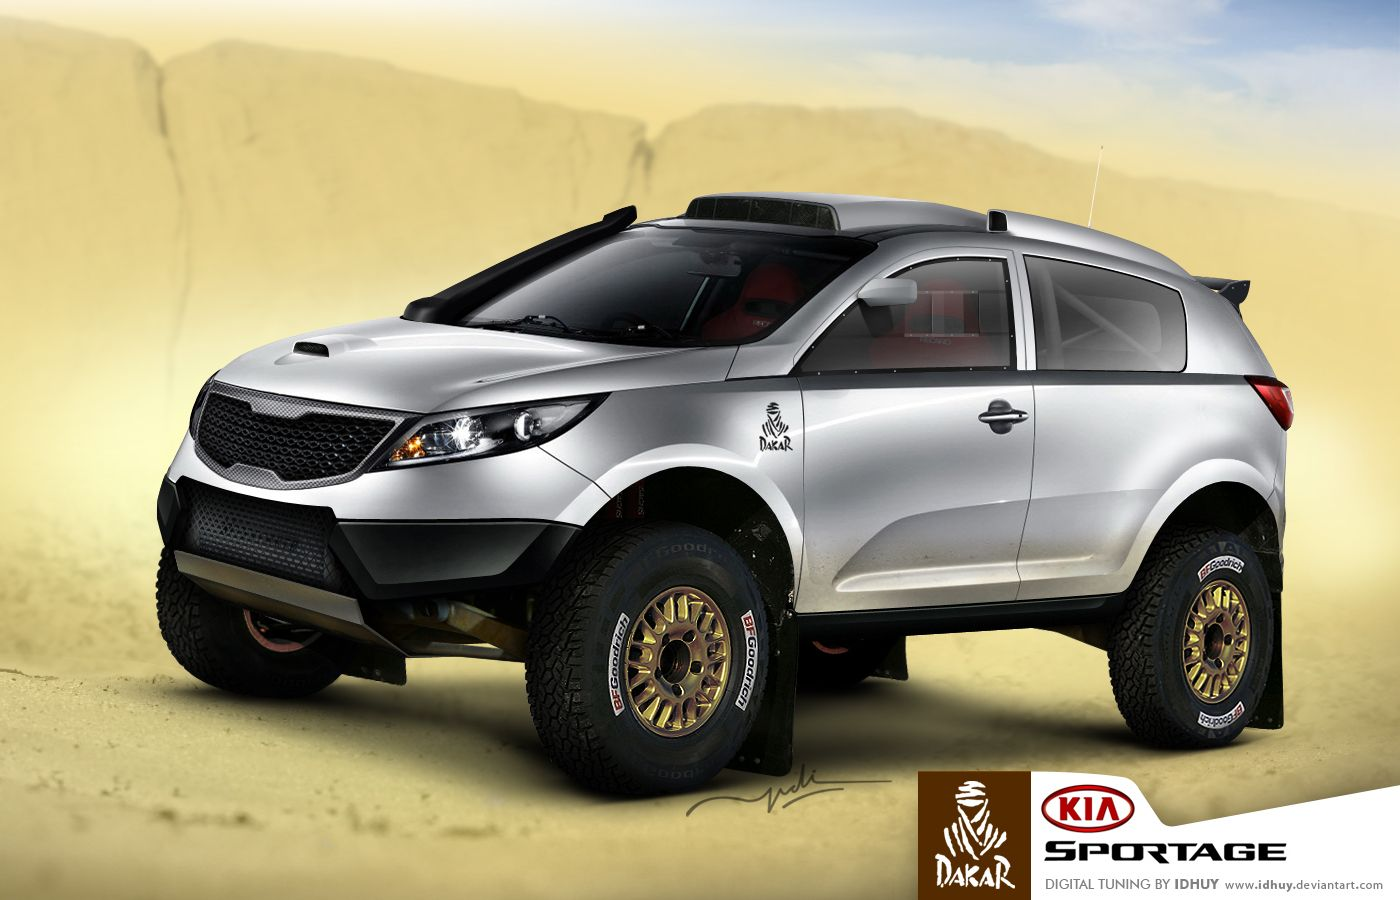 Dakar vehicles yahoo canada image search results